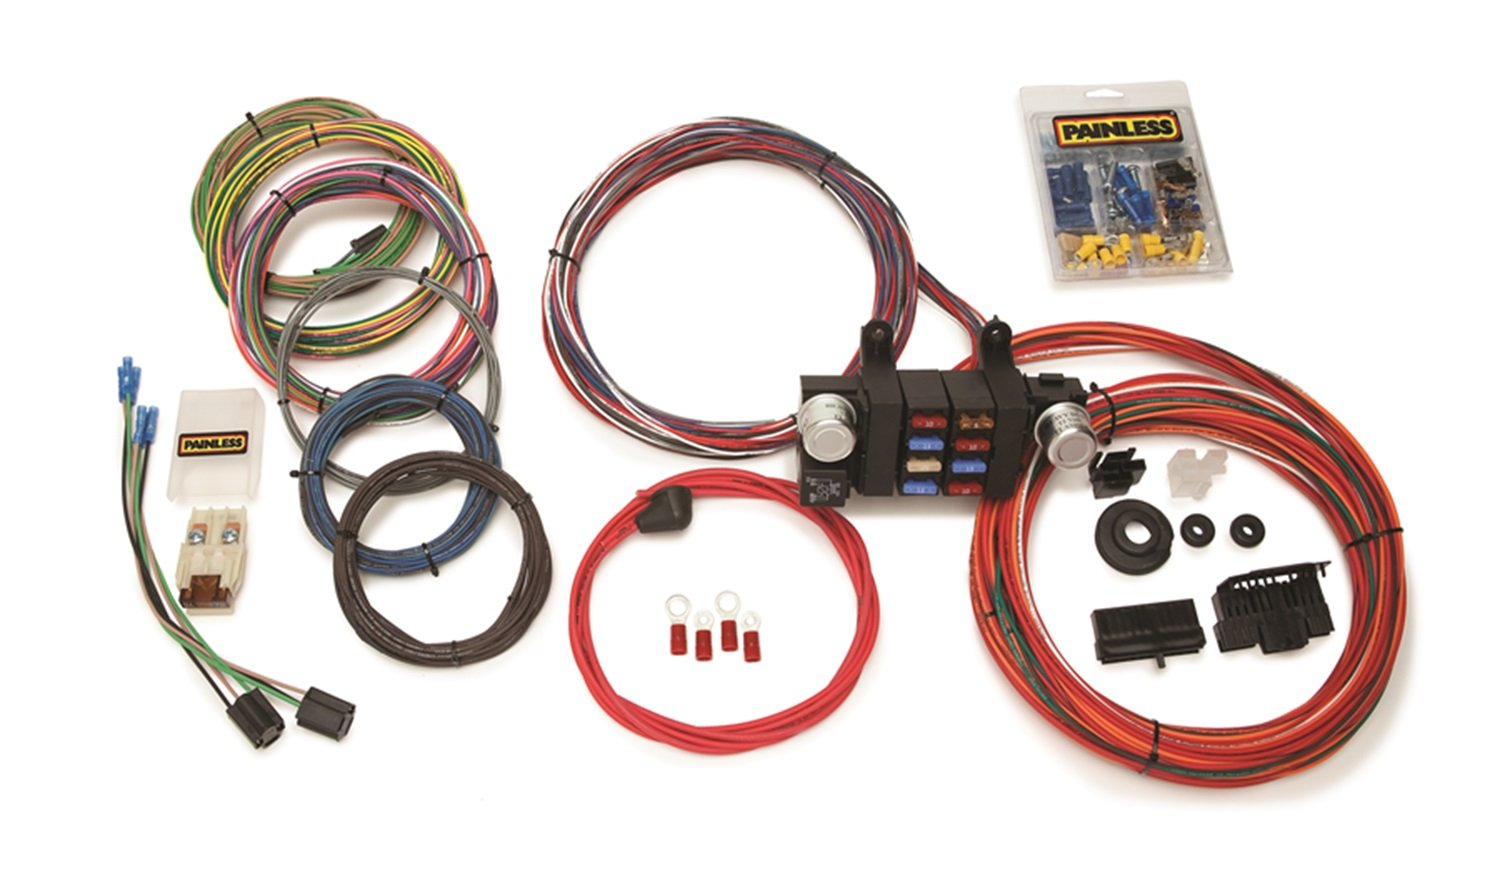 714FypRjpJL._SL1500_ amazon com painless wiring 10308 8 circuit mod t bucket h 8 wire wiring harness at mifinder.co